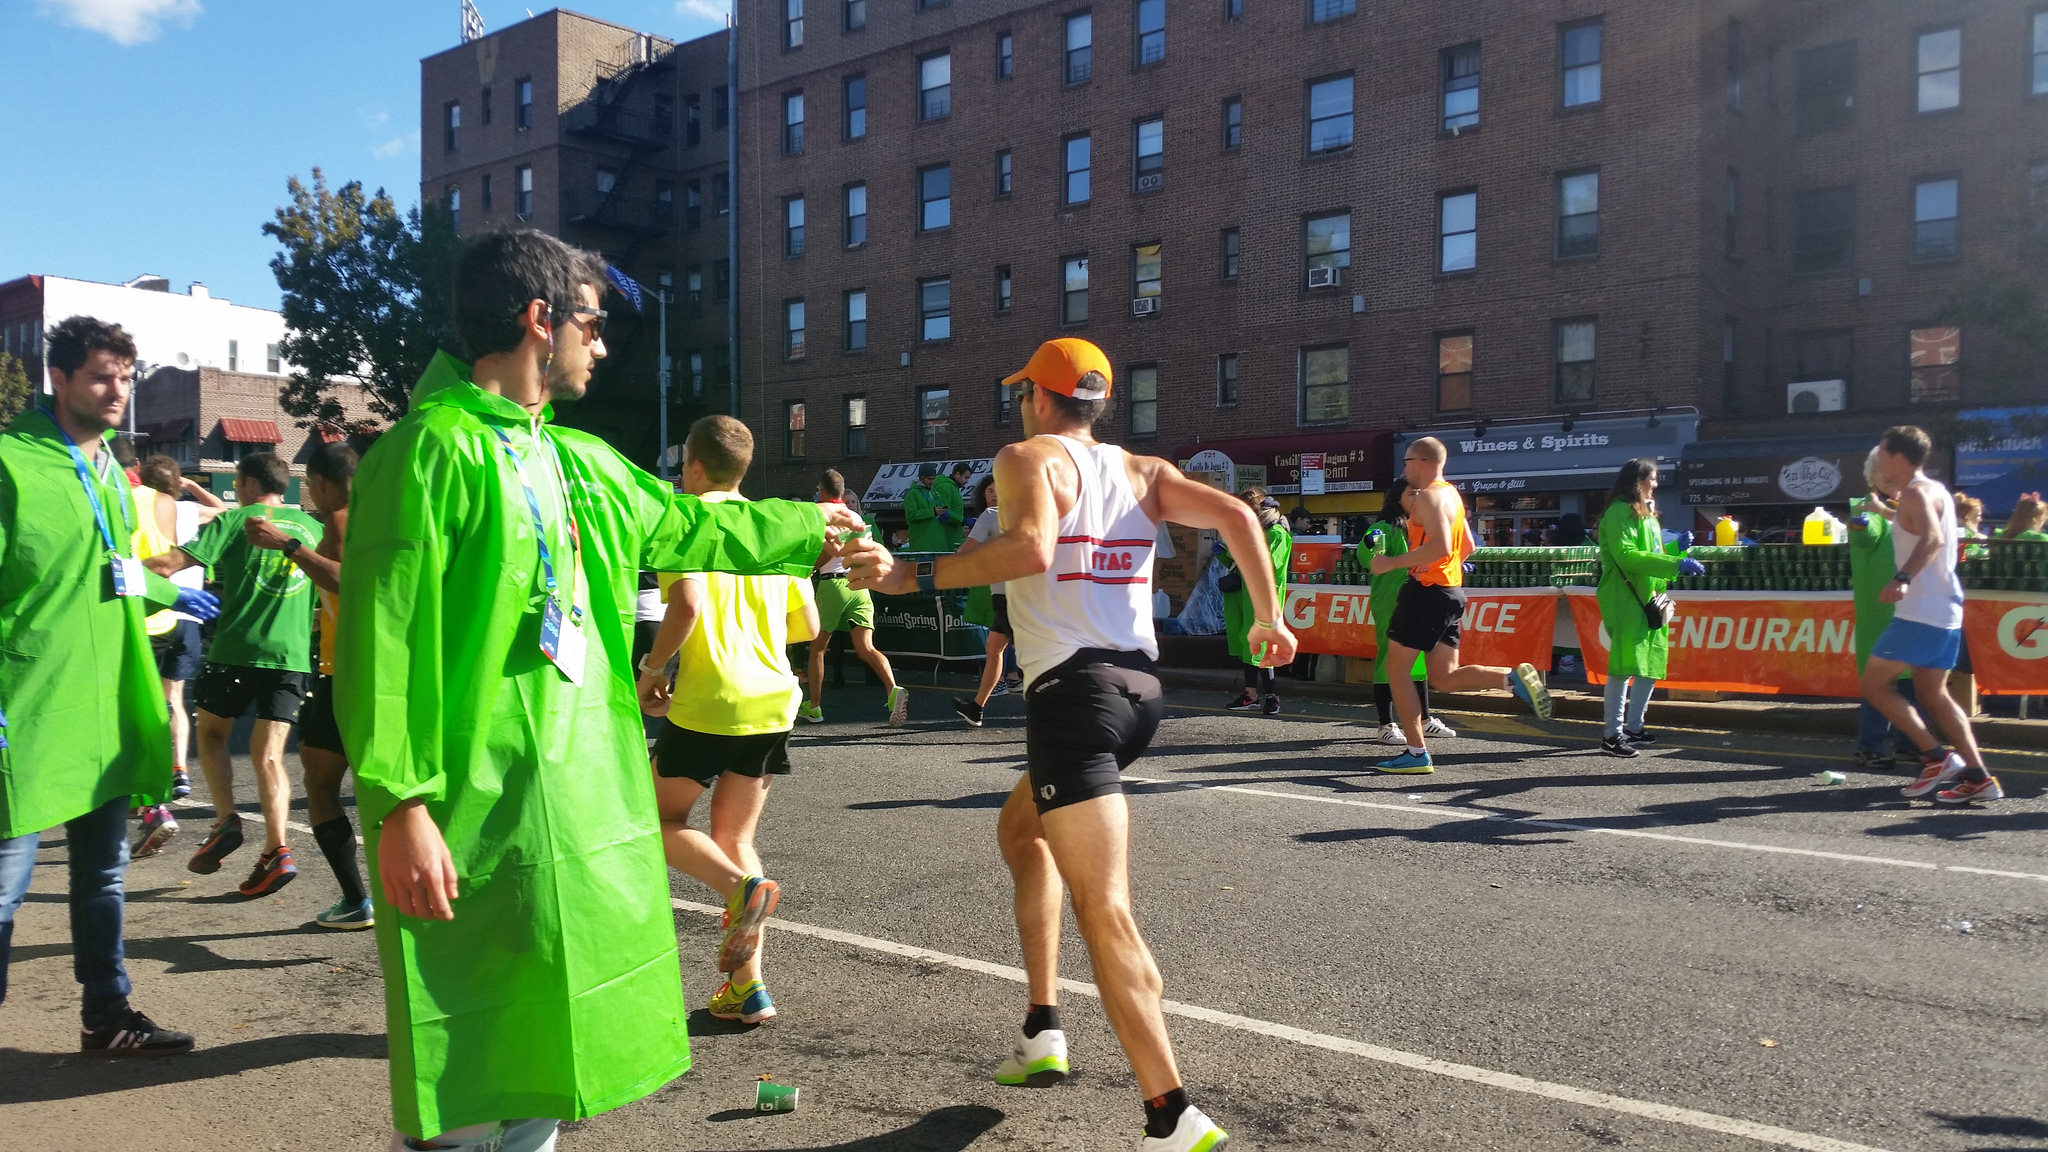 Young man hands water to passing marathon runner